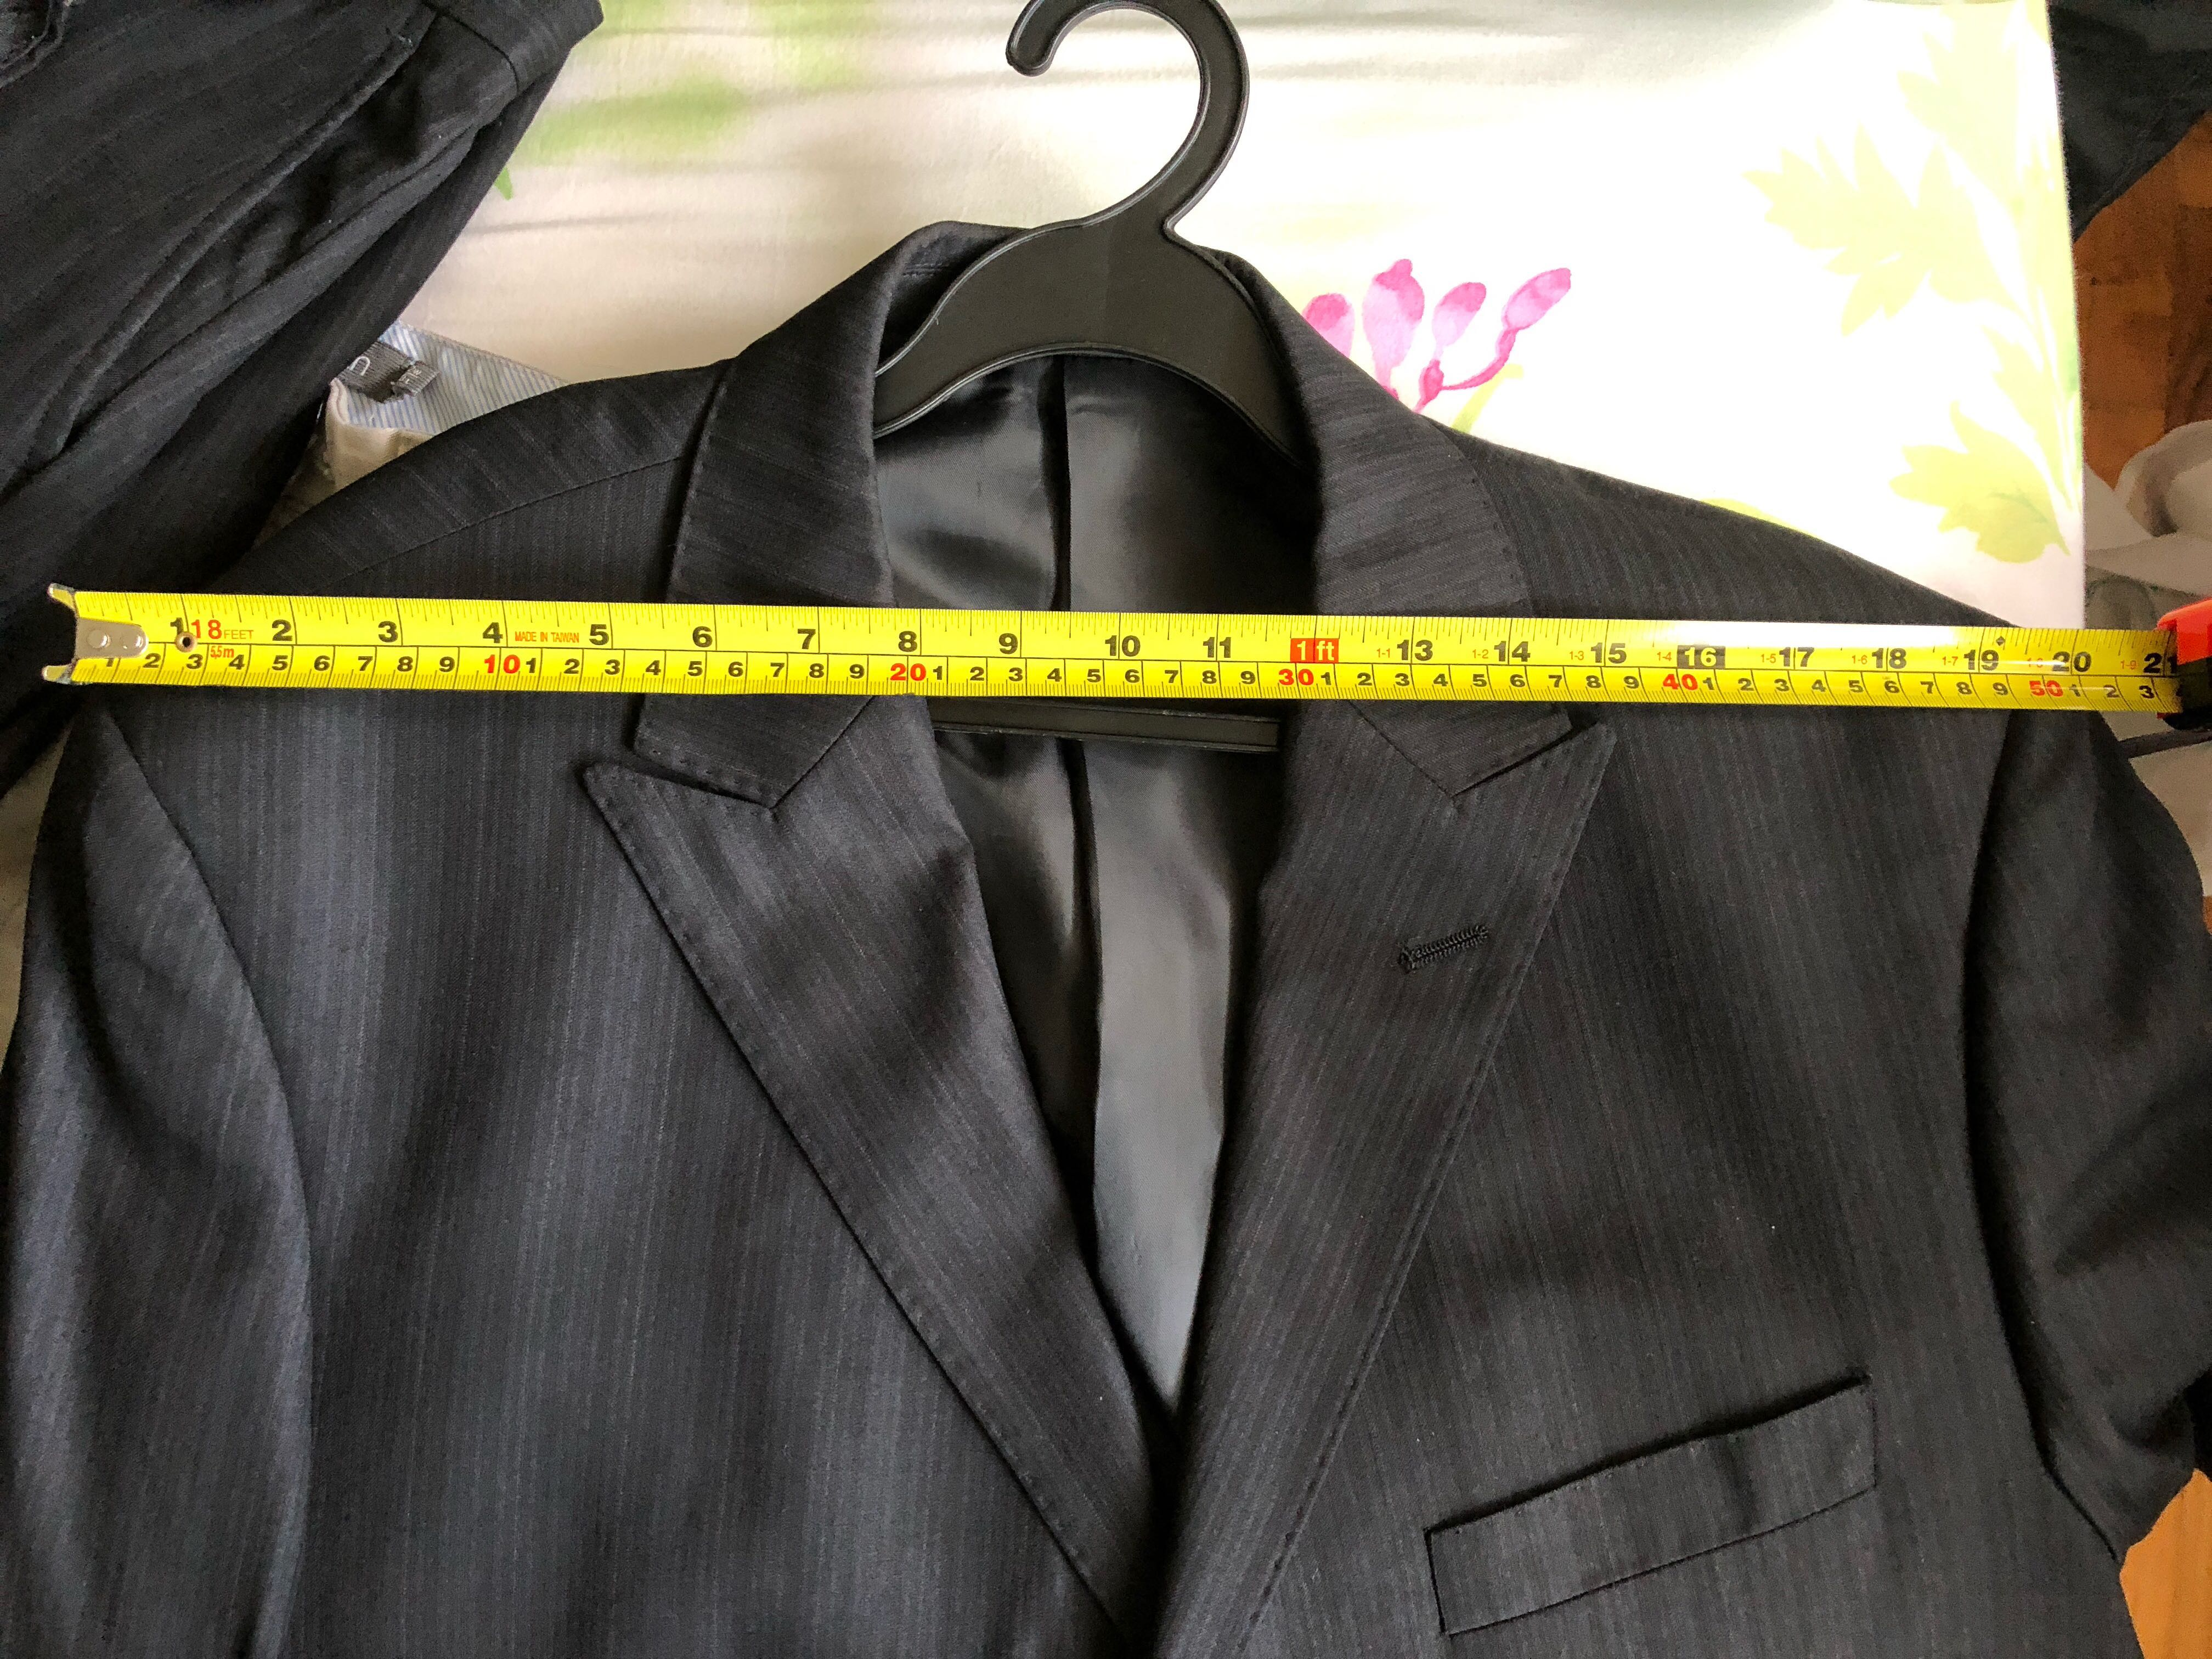 19920a4f65 Price revised: BN Men suit, Men's Fashion, Clothes, Outerwear on Carousell